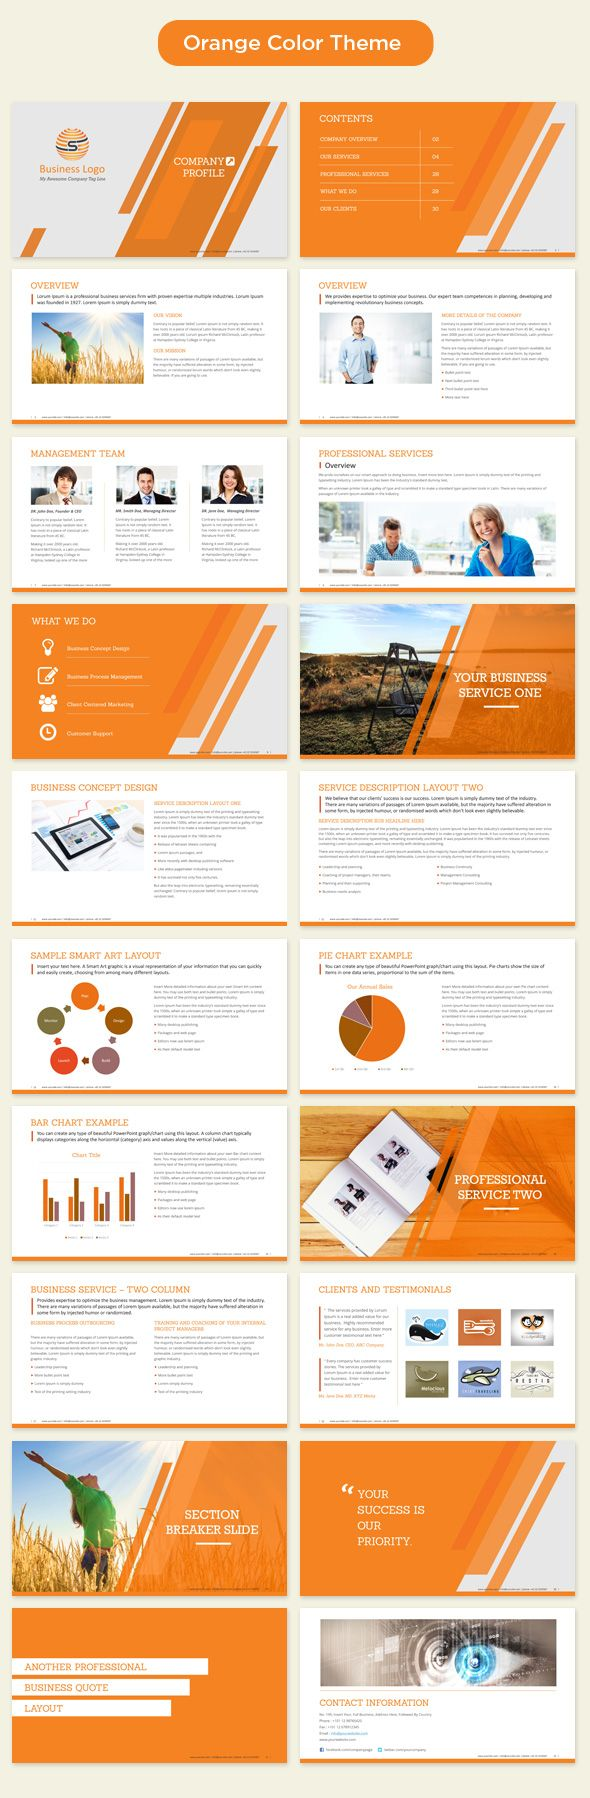 Company profile template PowerPoint. Template is available in 4 unique color themes.  http://slidehelper.com/company-profile-powerpoint-template-prime-corporate/  See more professional PowerPoint templates http://slidehelper.com